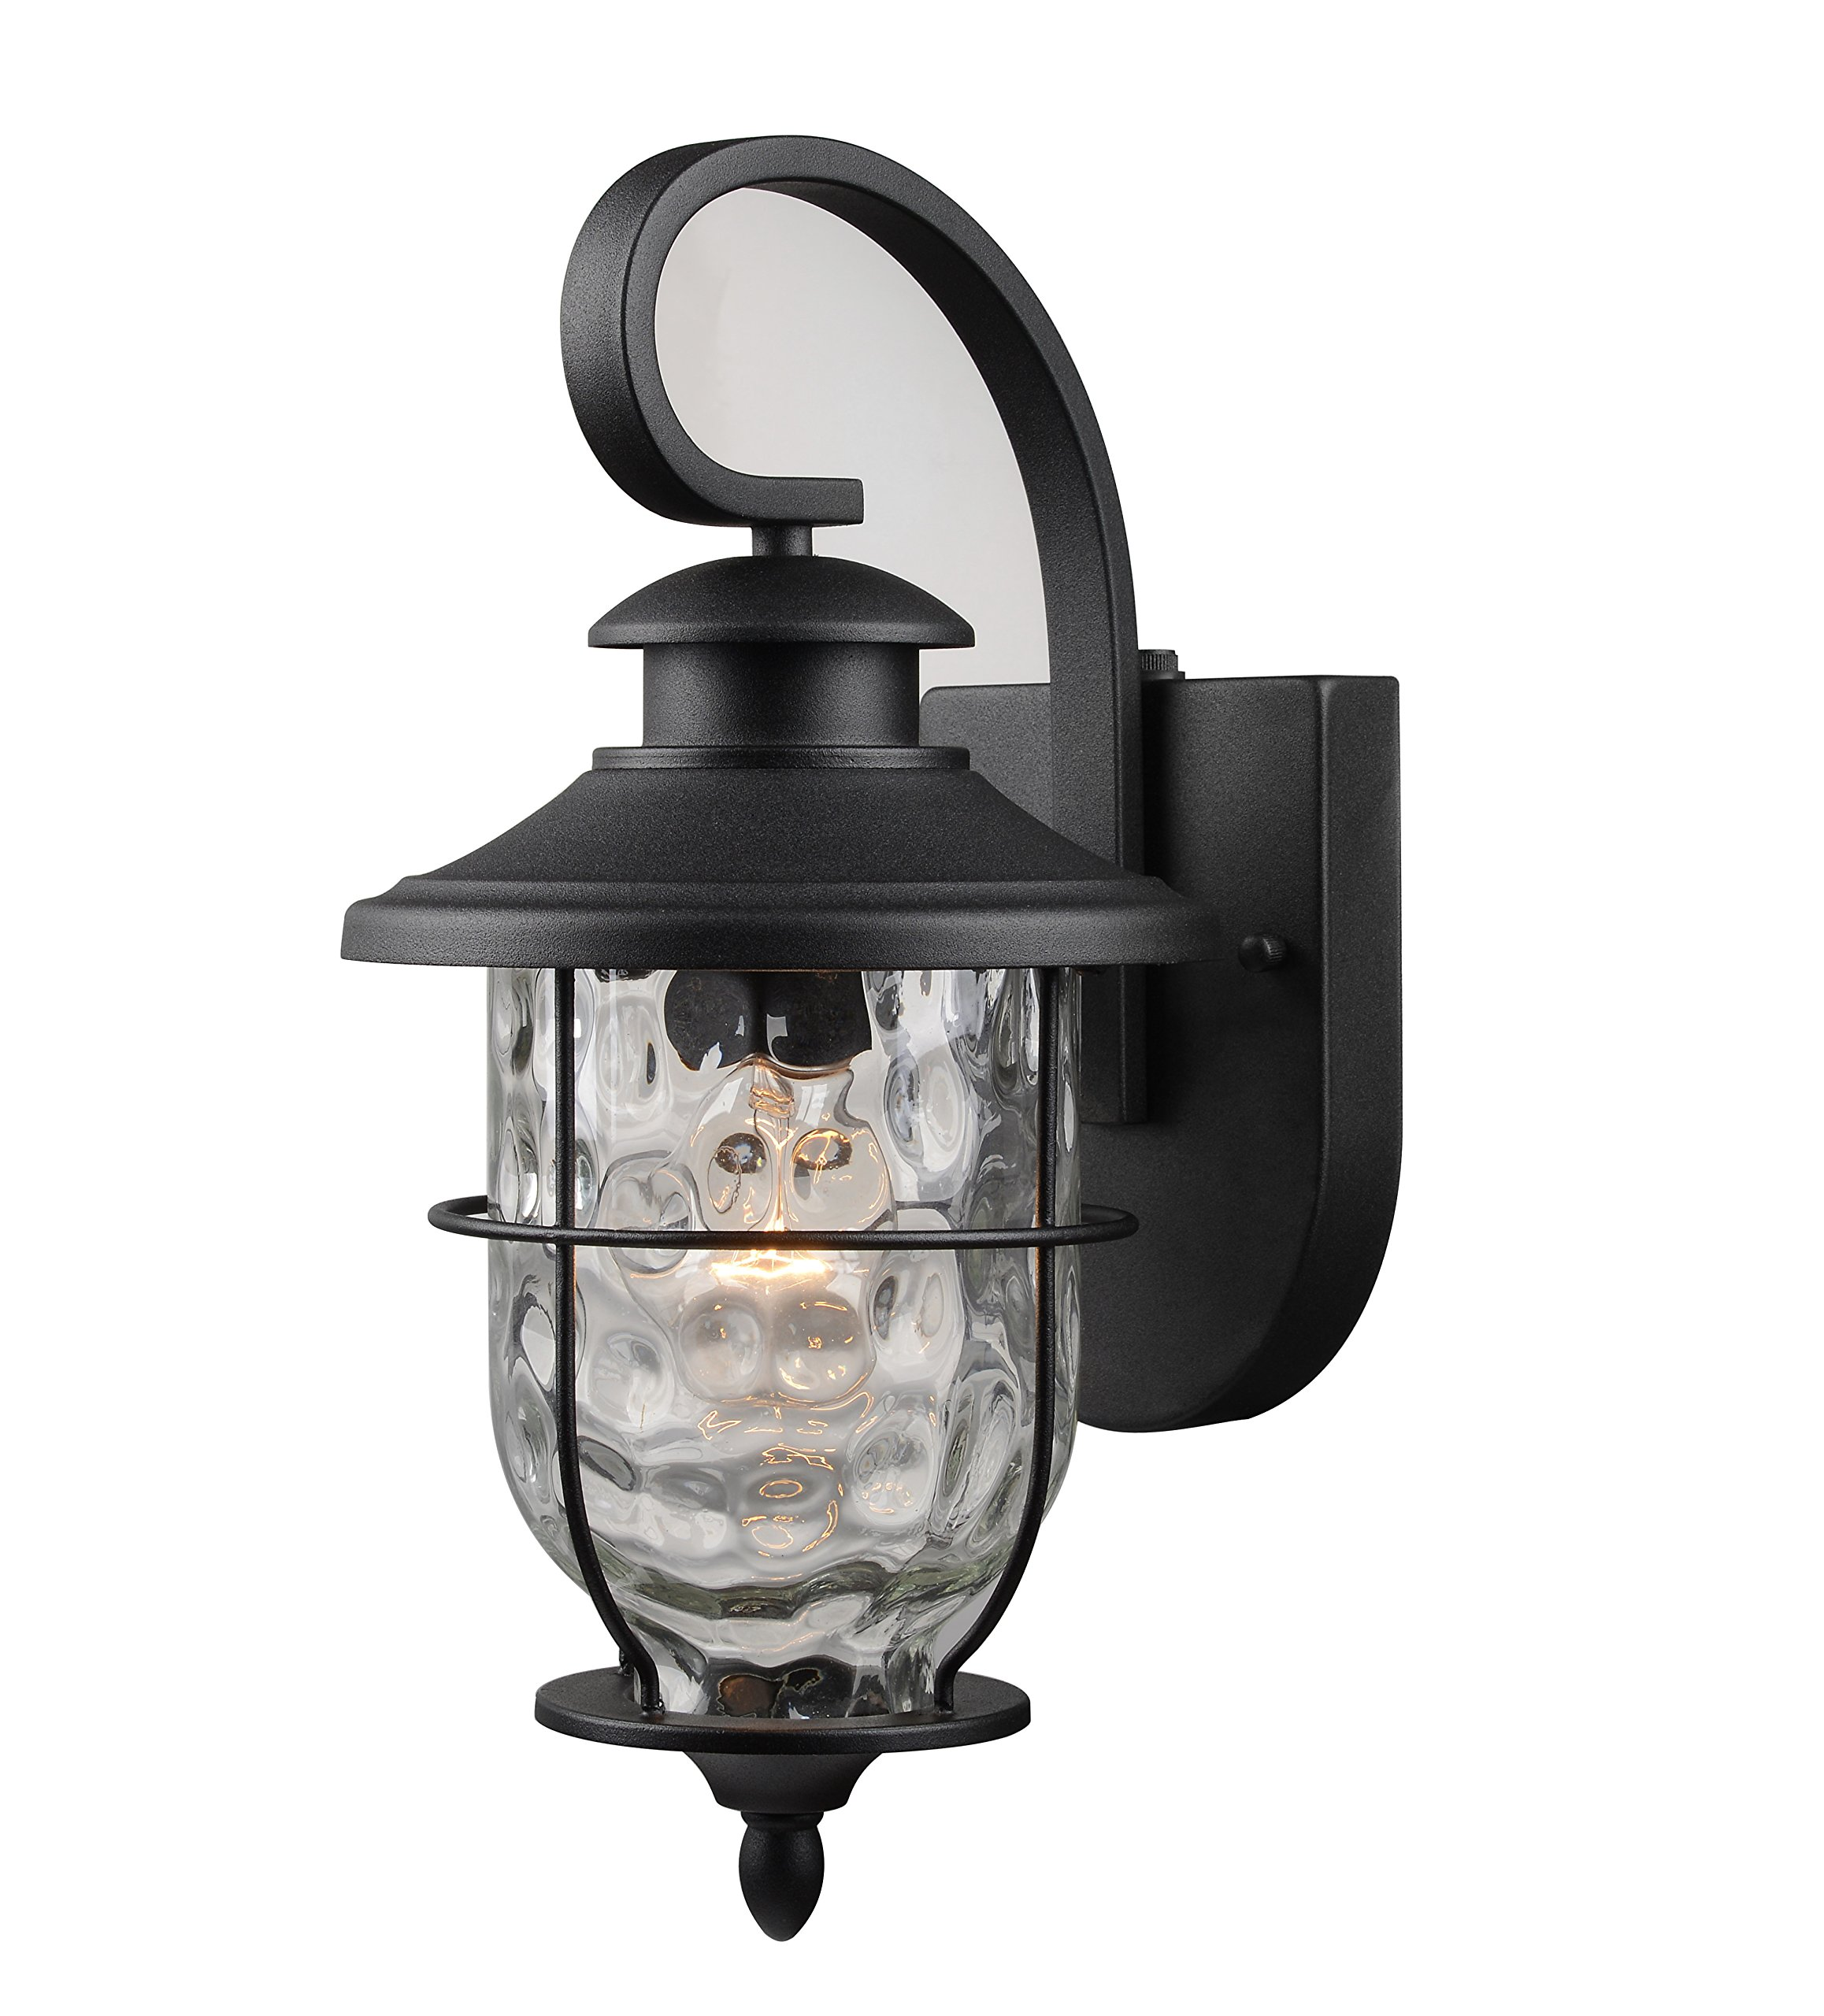 Hardware House LLC 21-2199 # 1-Light Lantern with Photo Cell Black Wall Lantern Light Fixture with 1- Light Has Photo Cell For Dust To Dawn Operation Clear Water Glass Shade